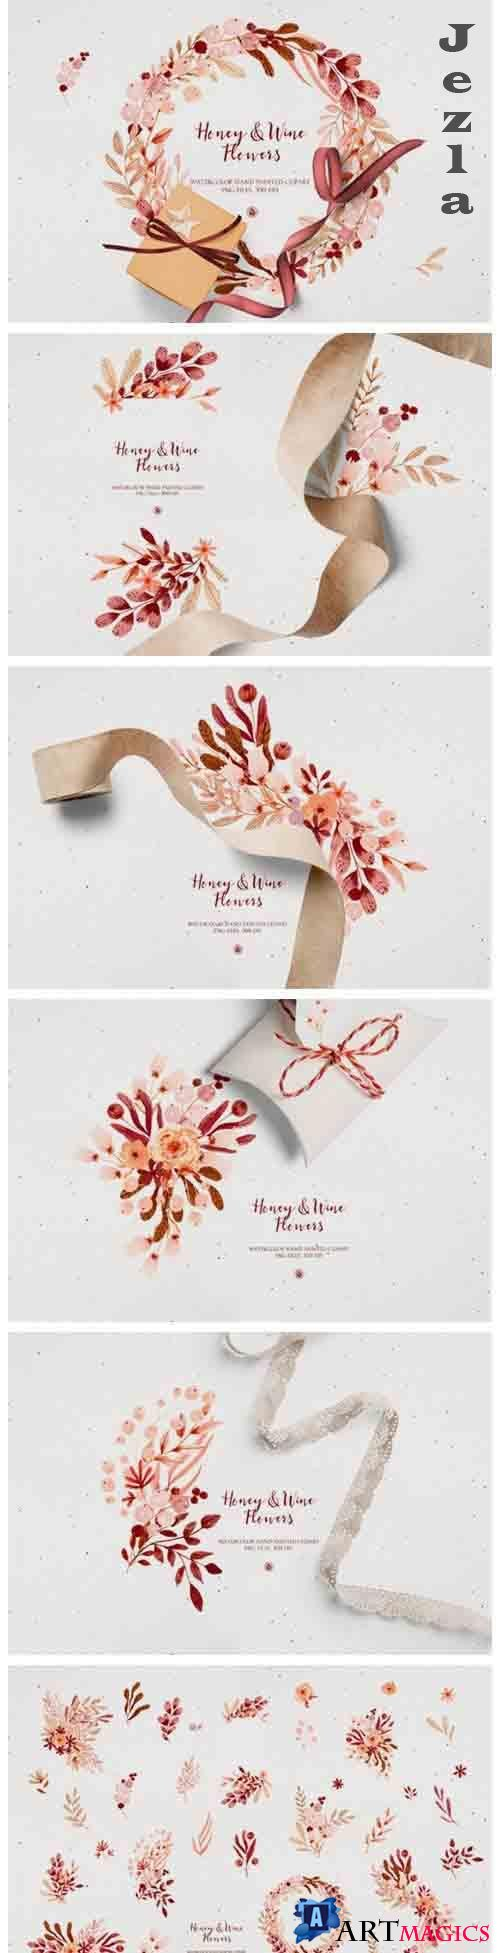 Honey & Wine Flowers watercolor set - 5639682